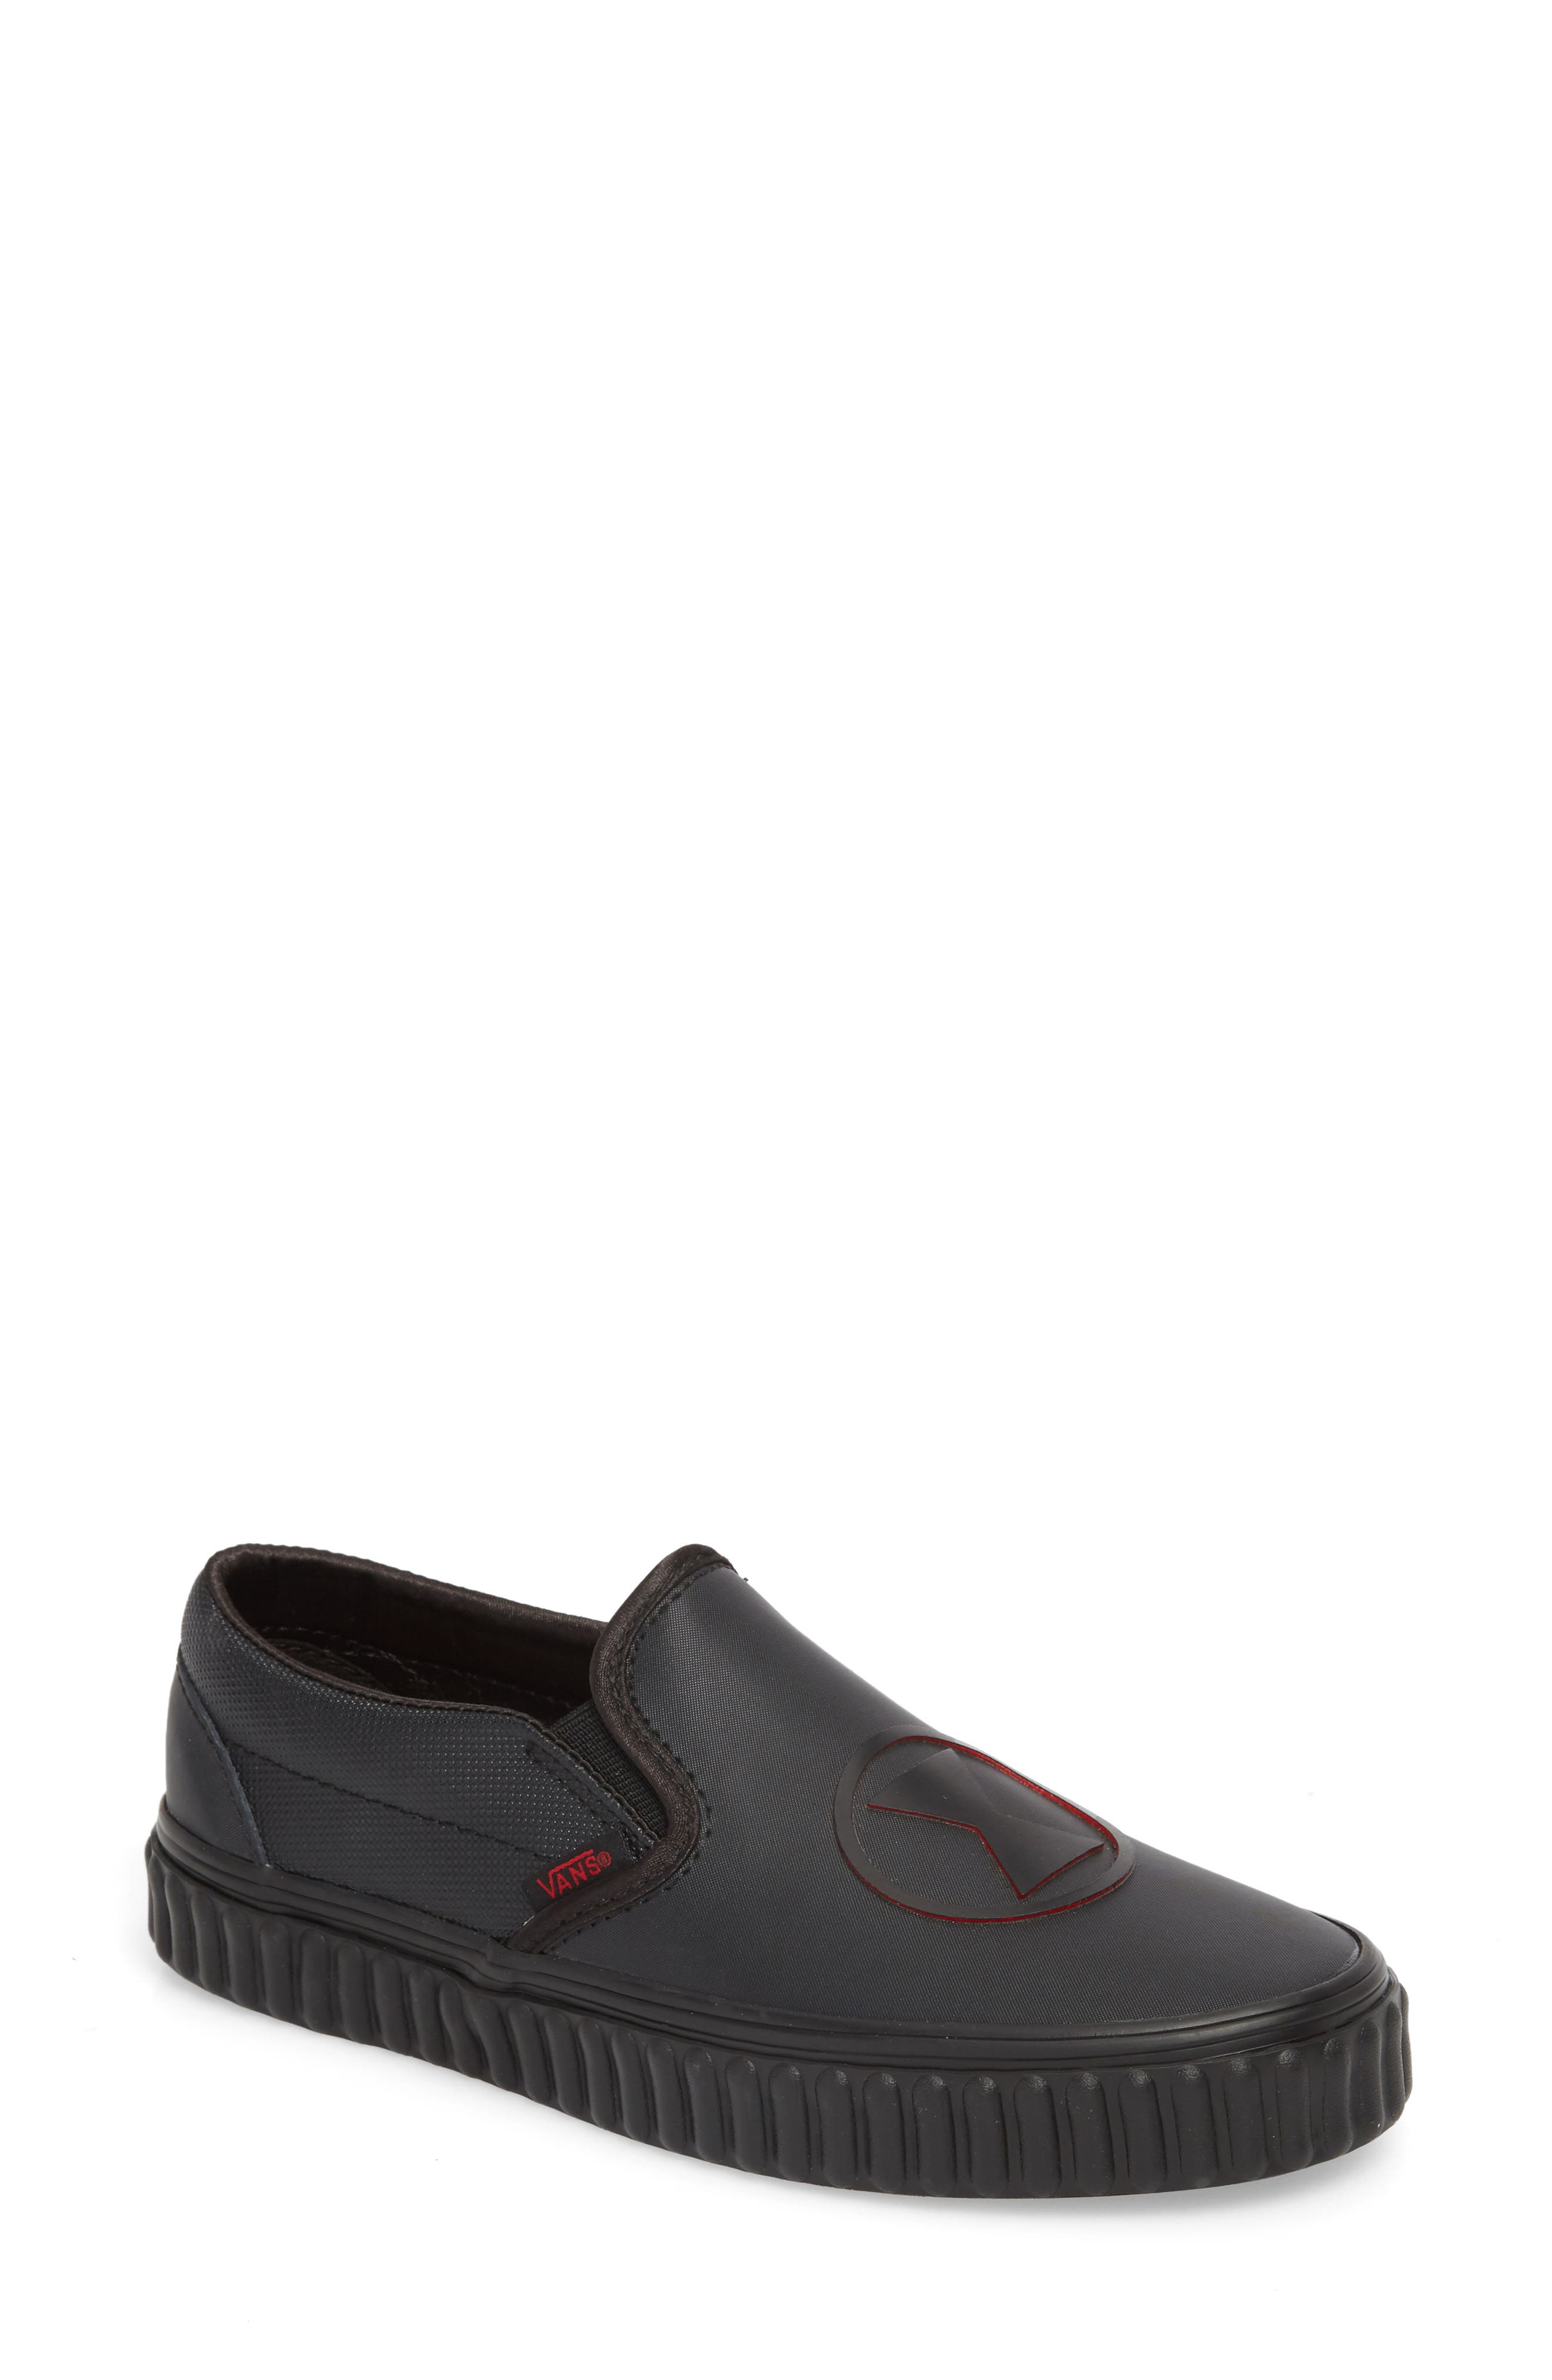 Marvel<sup>®</sup> Black Widow Classic Slip-On,                             Main thumbnail 1, color,                             MARVEL BLACK WIDOW/ BLACK